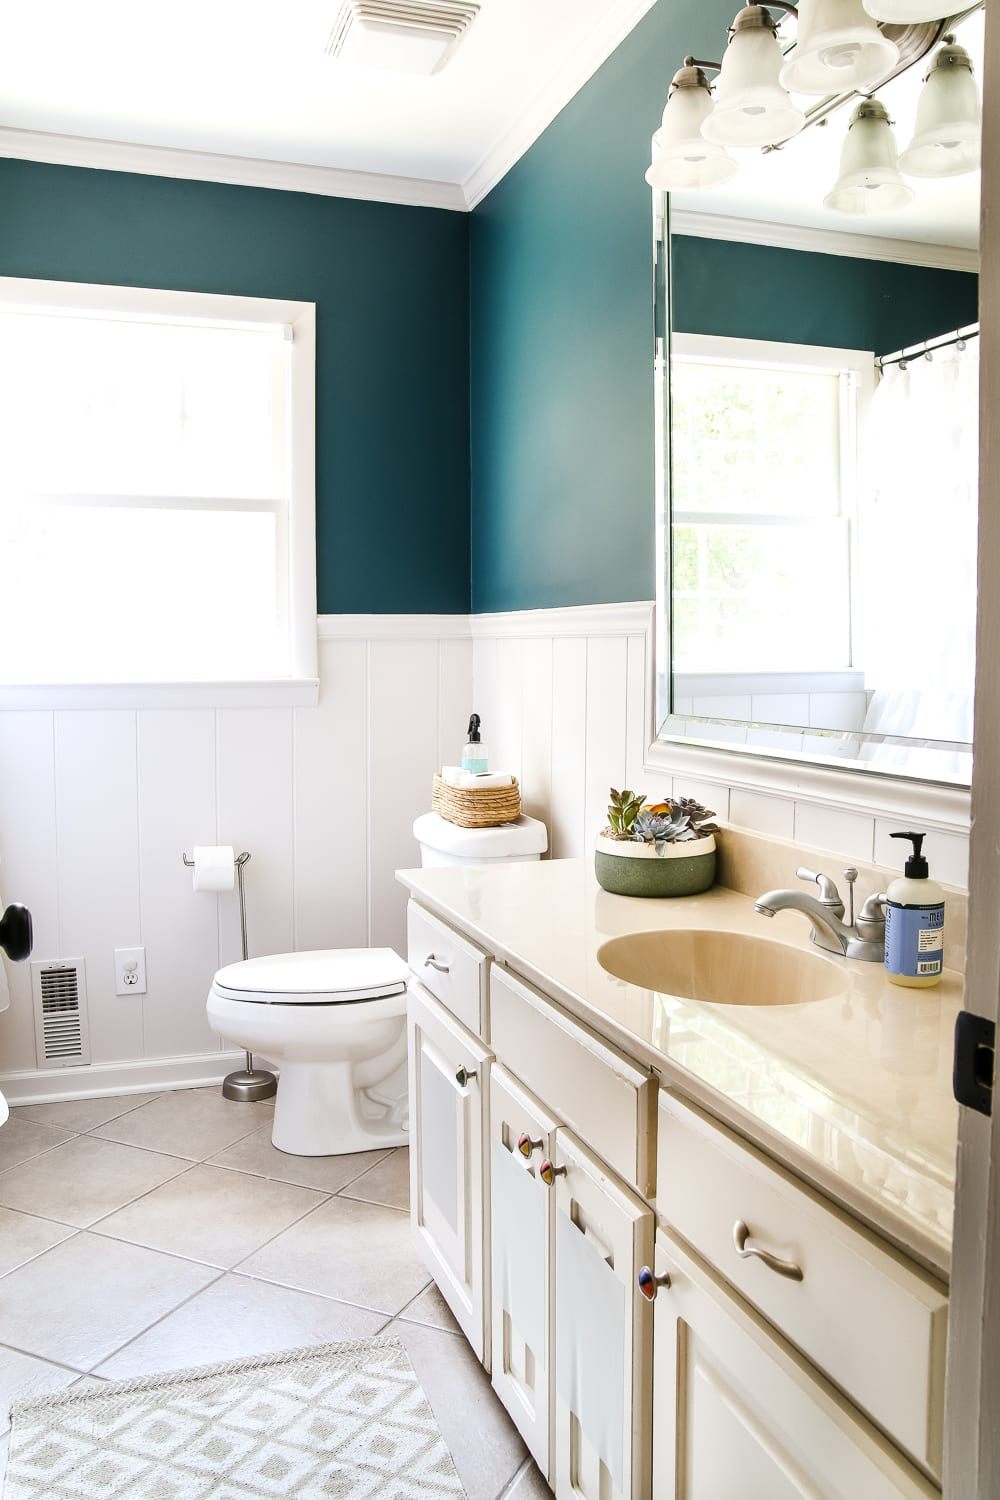 teal painted bathroom makeover bless 39 er house. Black Bedroom Furniture Sets. Home Design Ideas